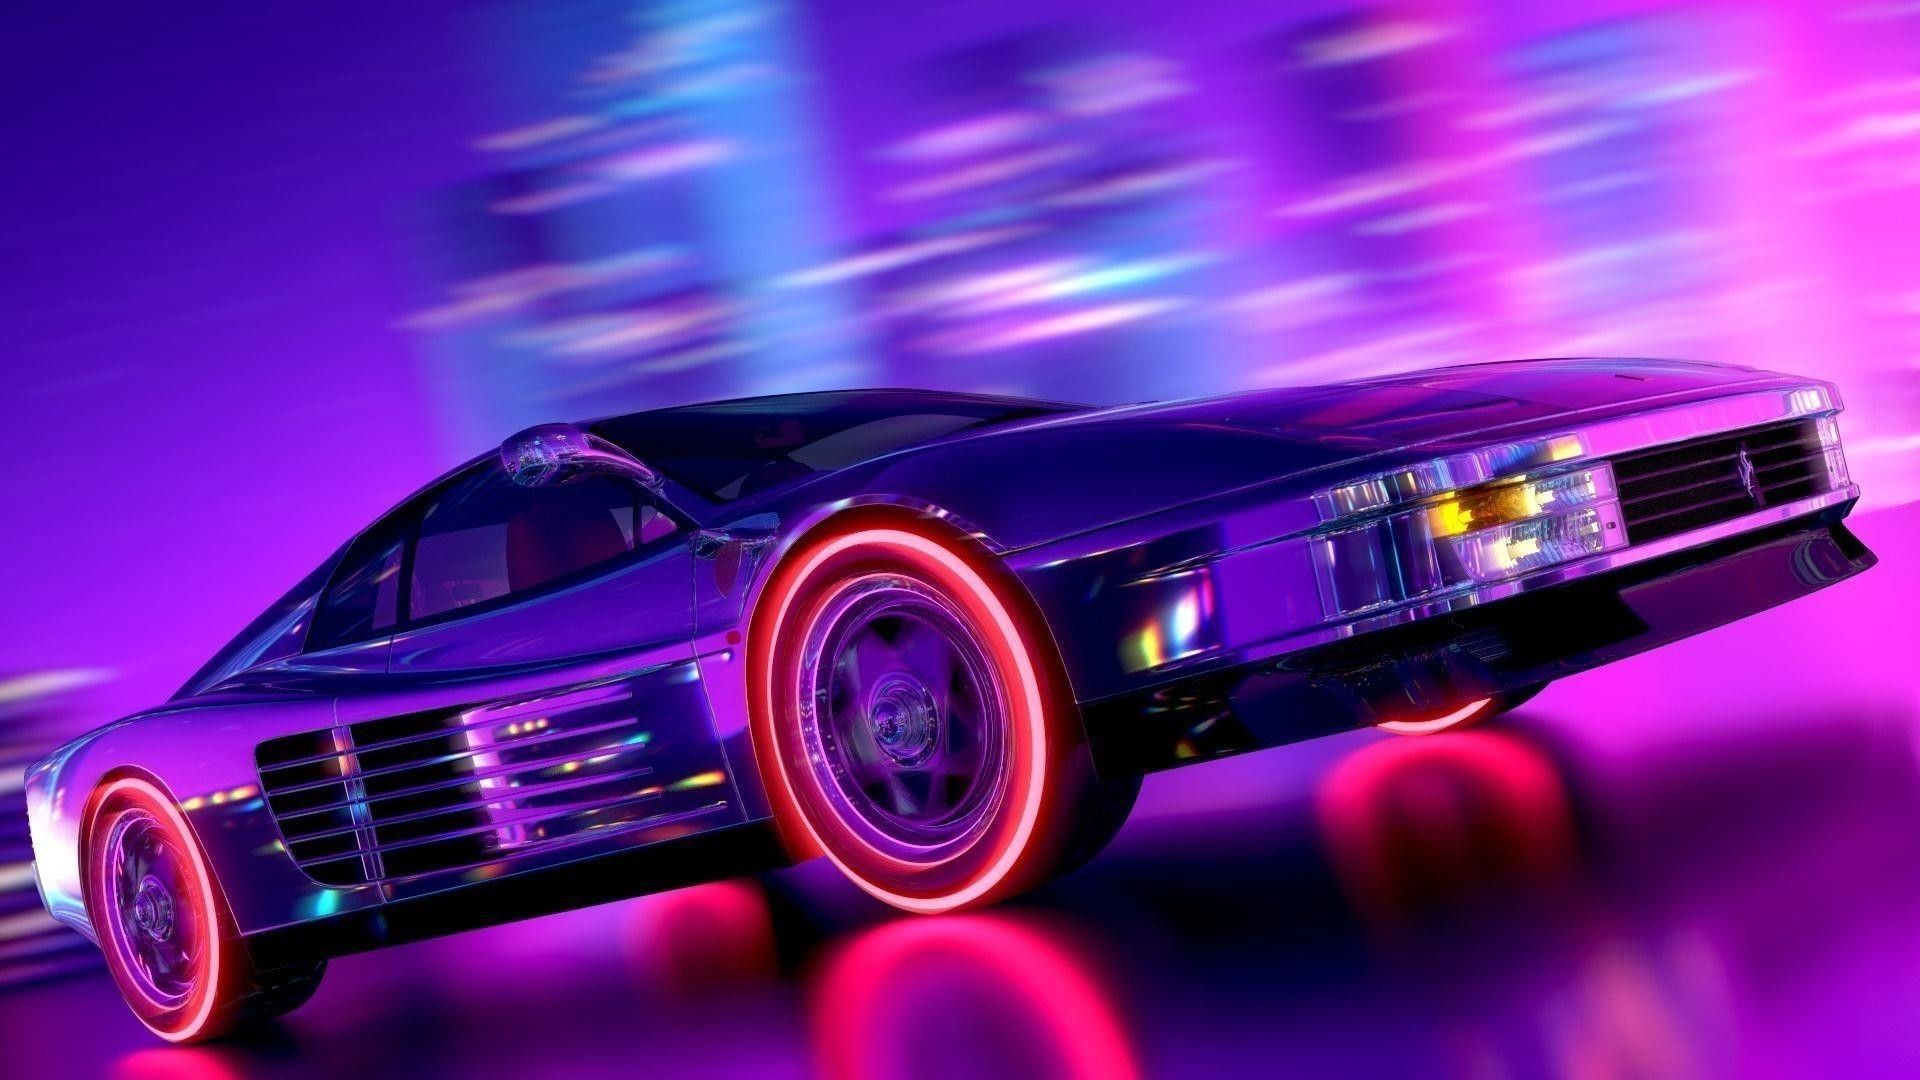 80s Retro Neon Car Wallpapers Top Free 80s Retro Neon Car